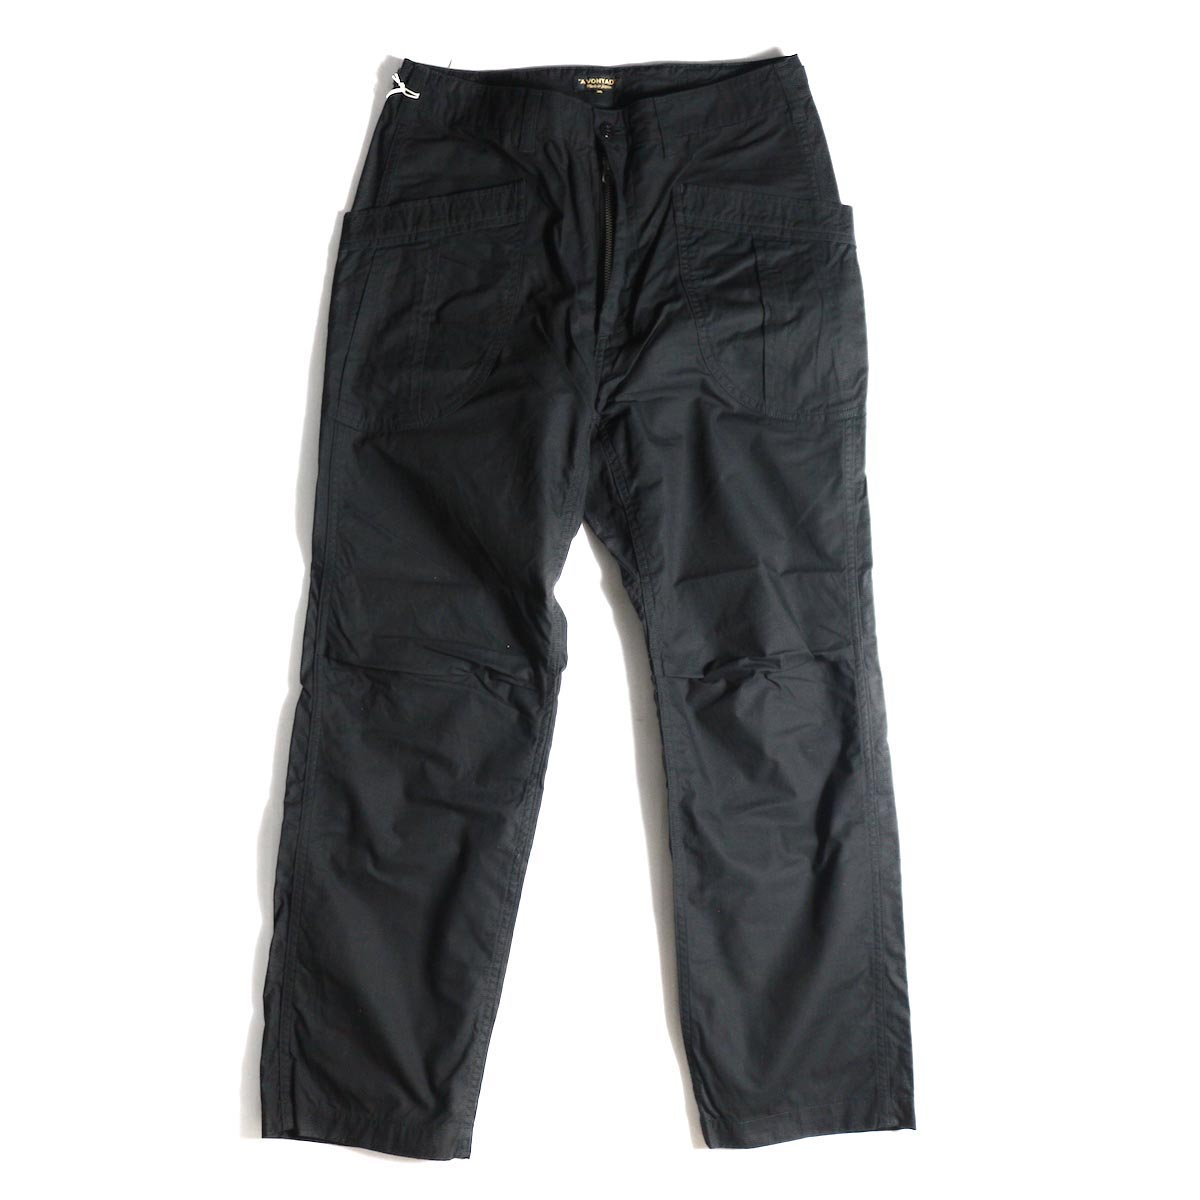 A VONTADE / Fatigue Trousers -Black